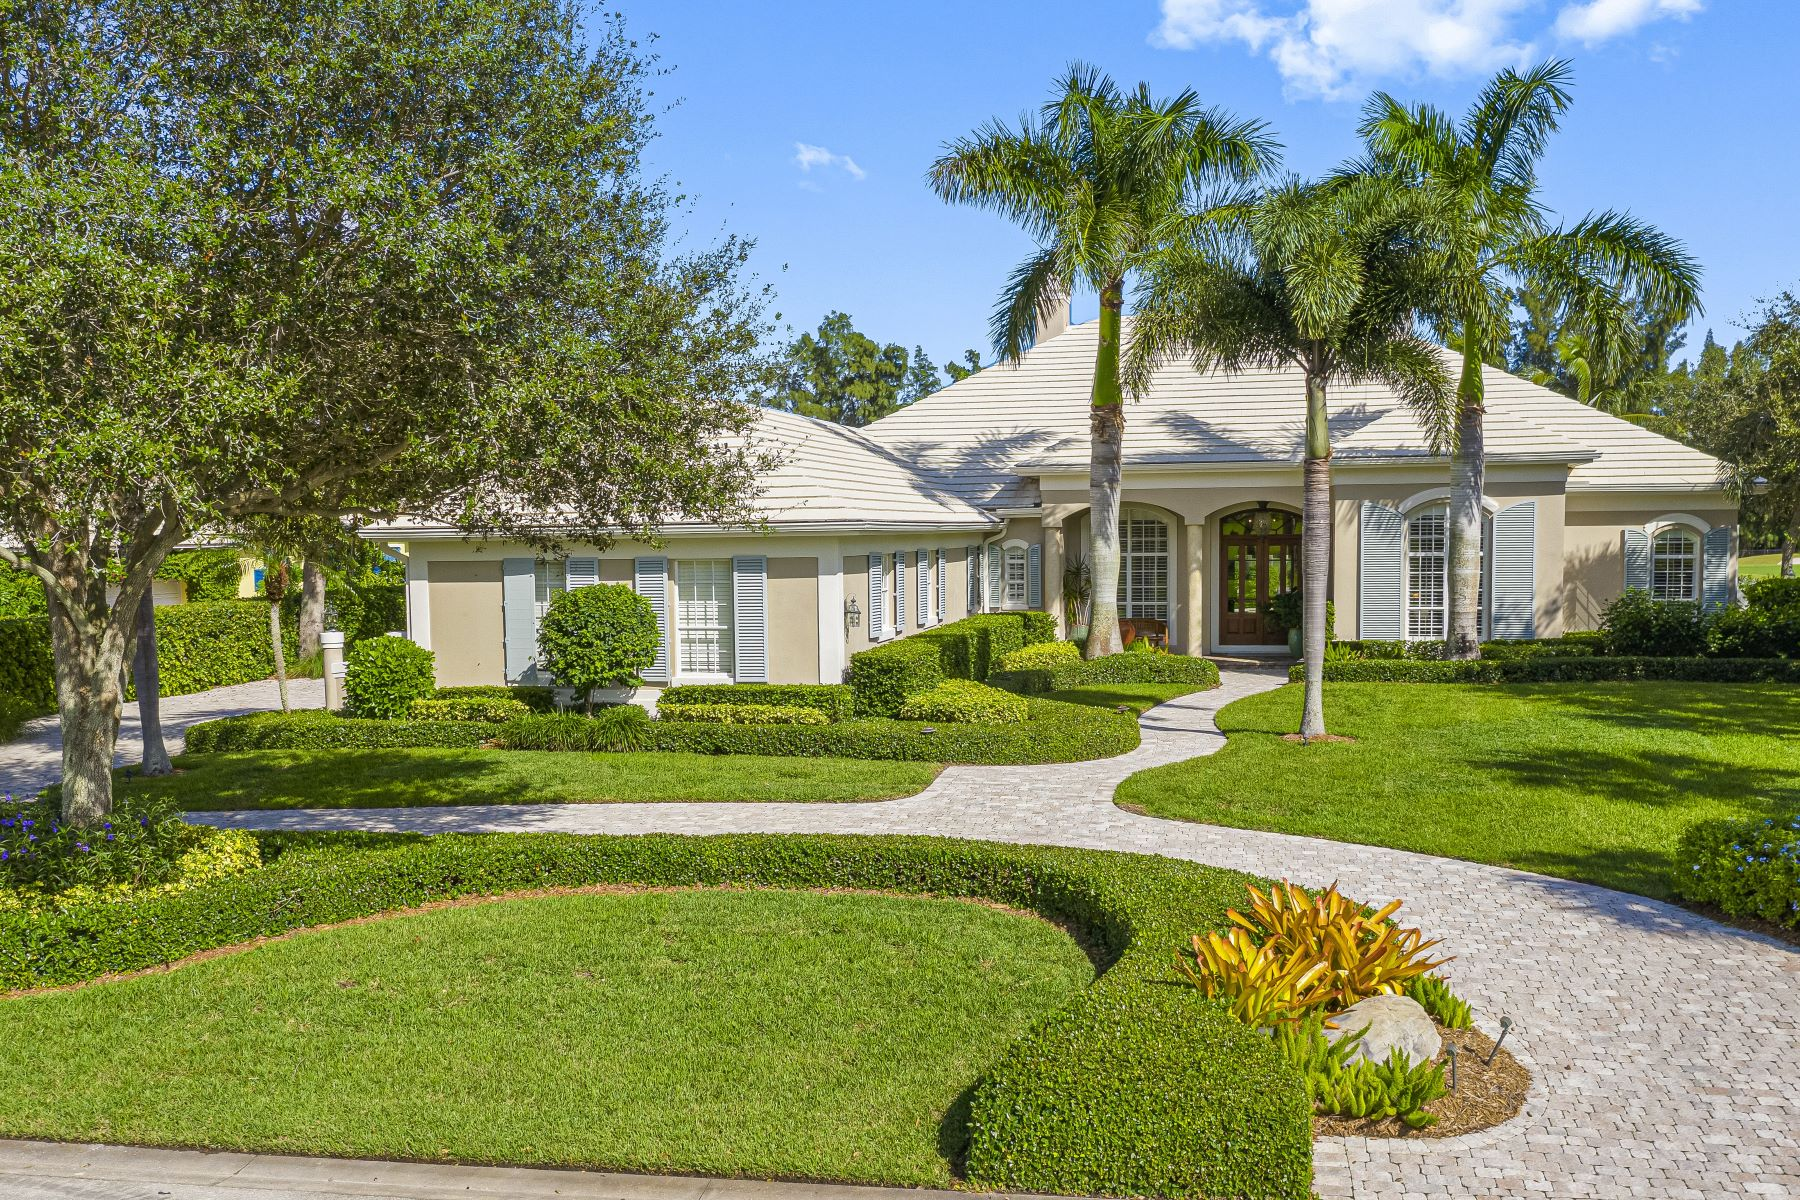 Property for Sale at 516 White Pelican Circle, Vero Beach, FL 516 White Pelican Circle Vero Beach, Florida 32963 United States